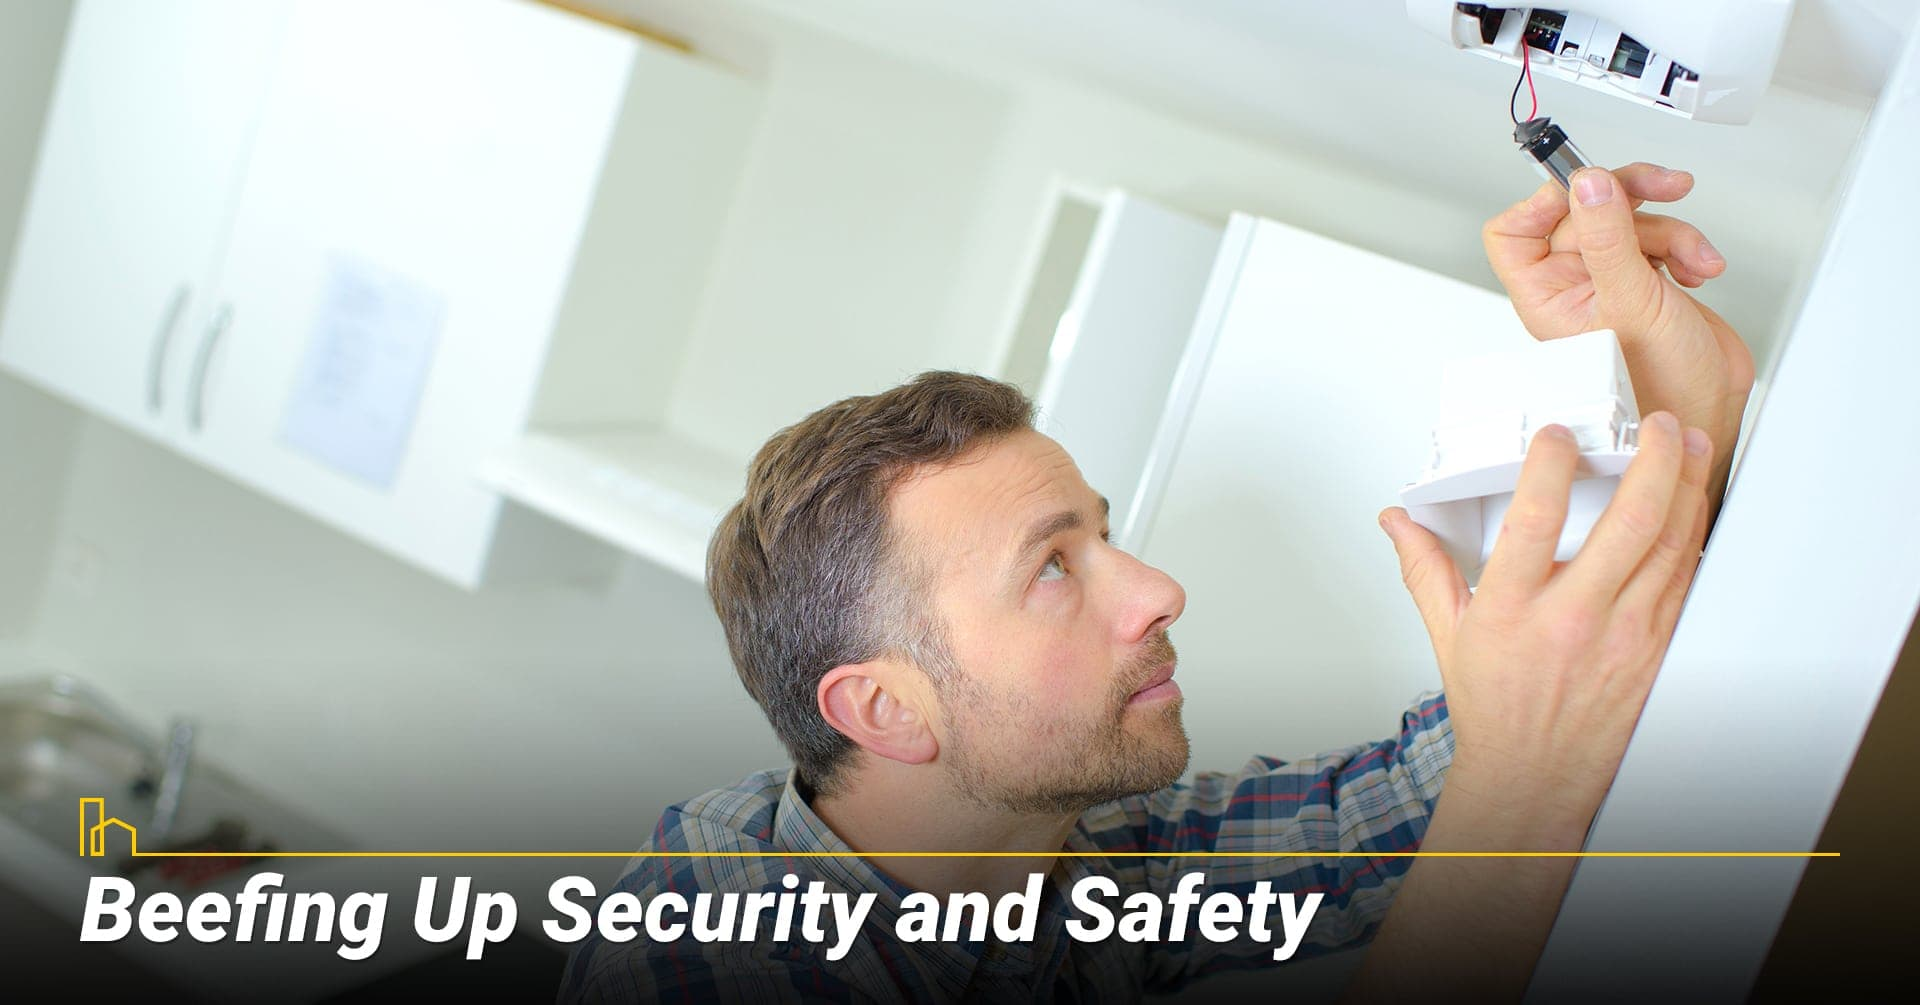 Beefing Up Security and Safety, check all safety systems around the house